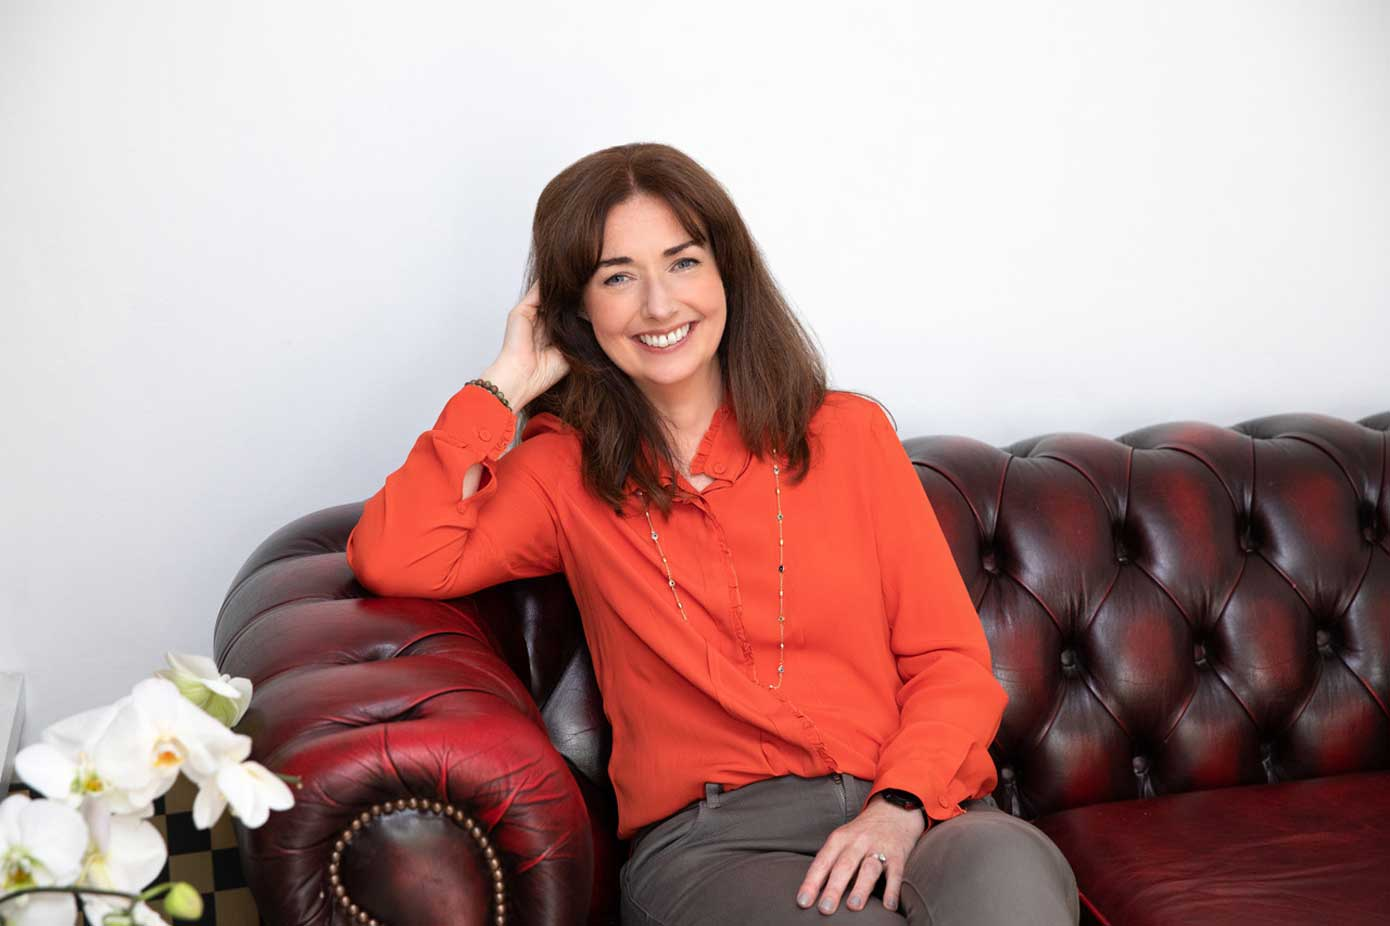 Hormonal Harmony at 40+ With Catherine O'Keeffe